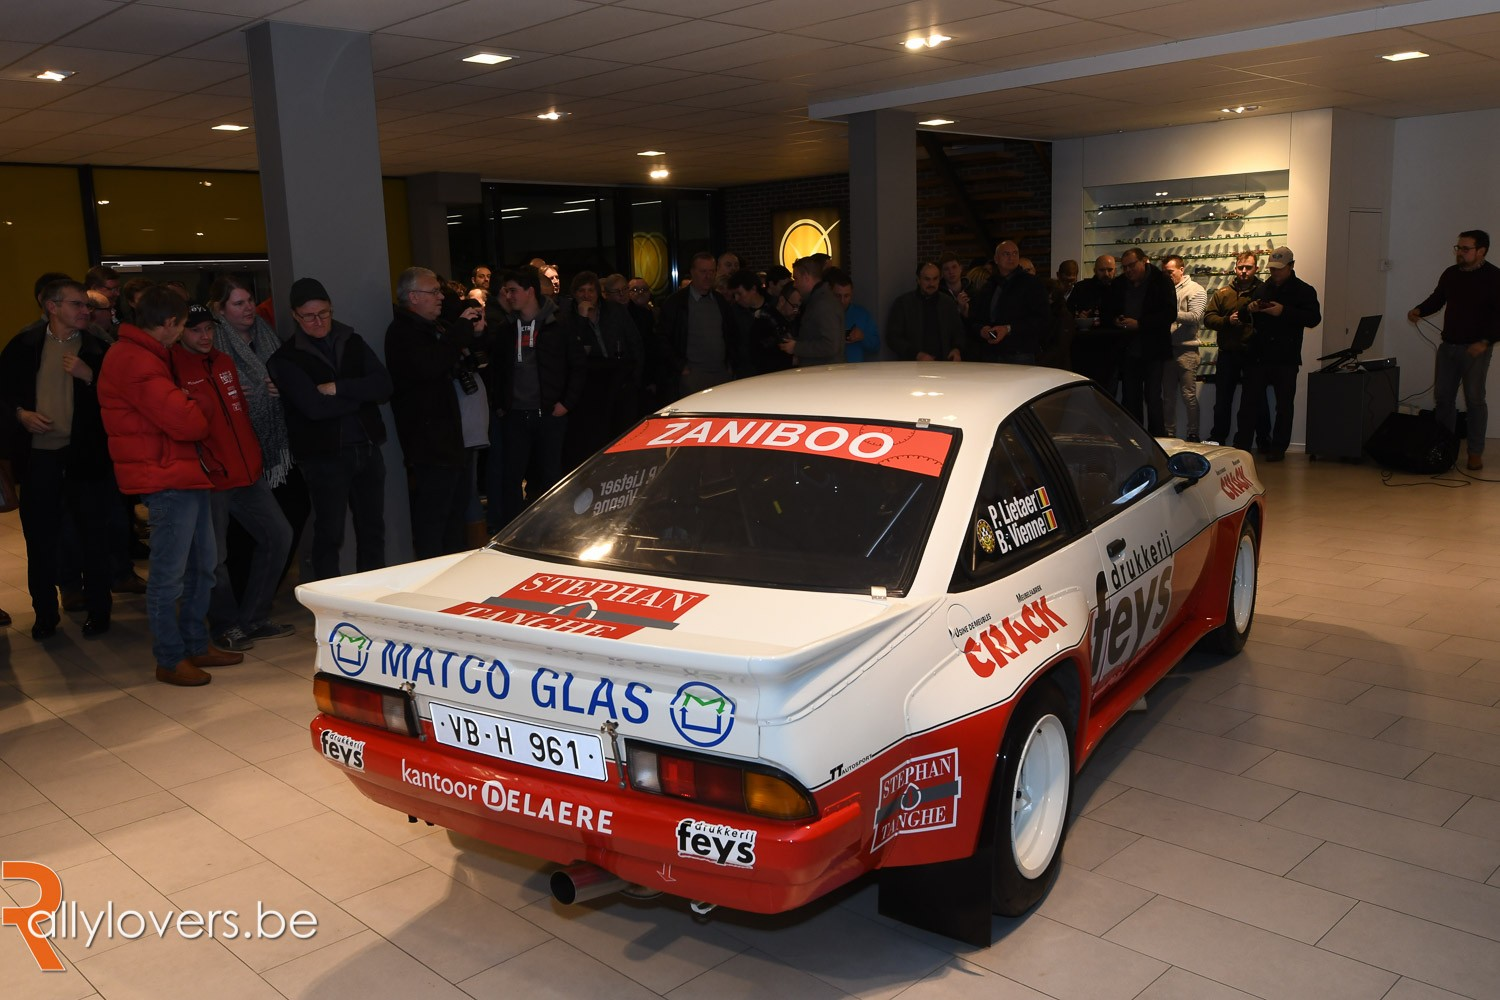 2018 - Paul Lietaer met Opel Manta 400 in Historic BRC